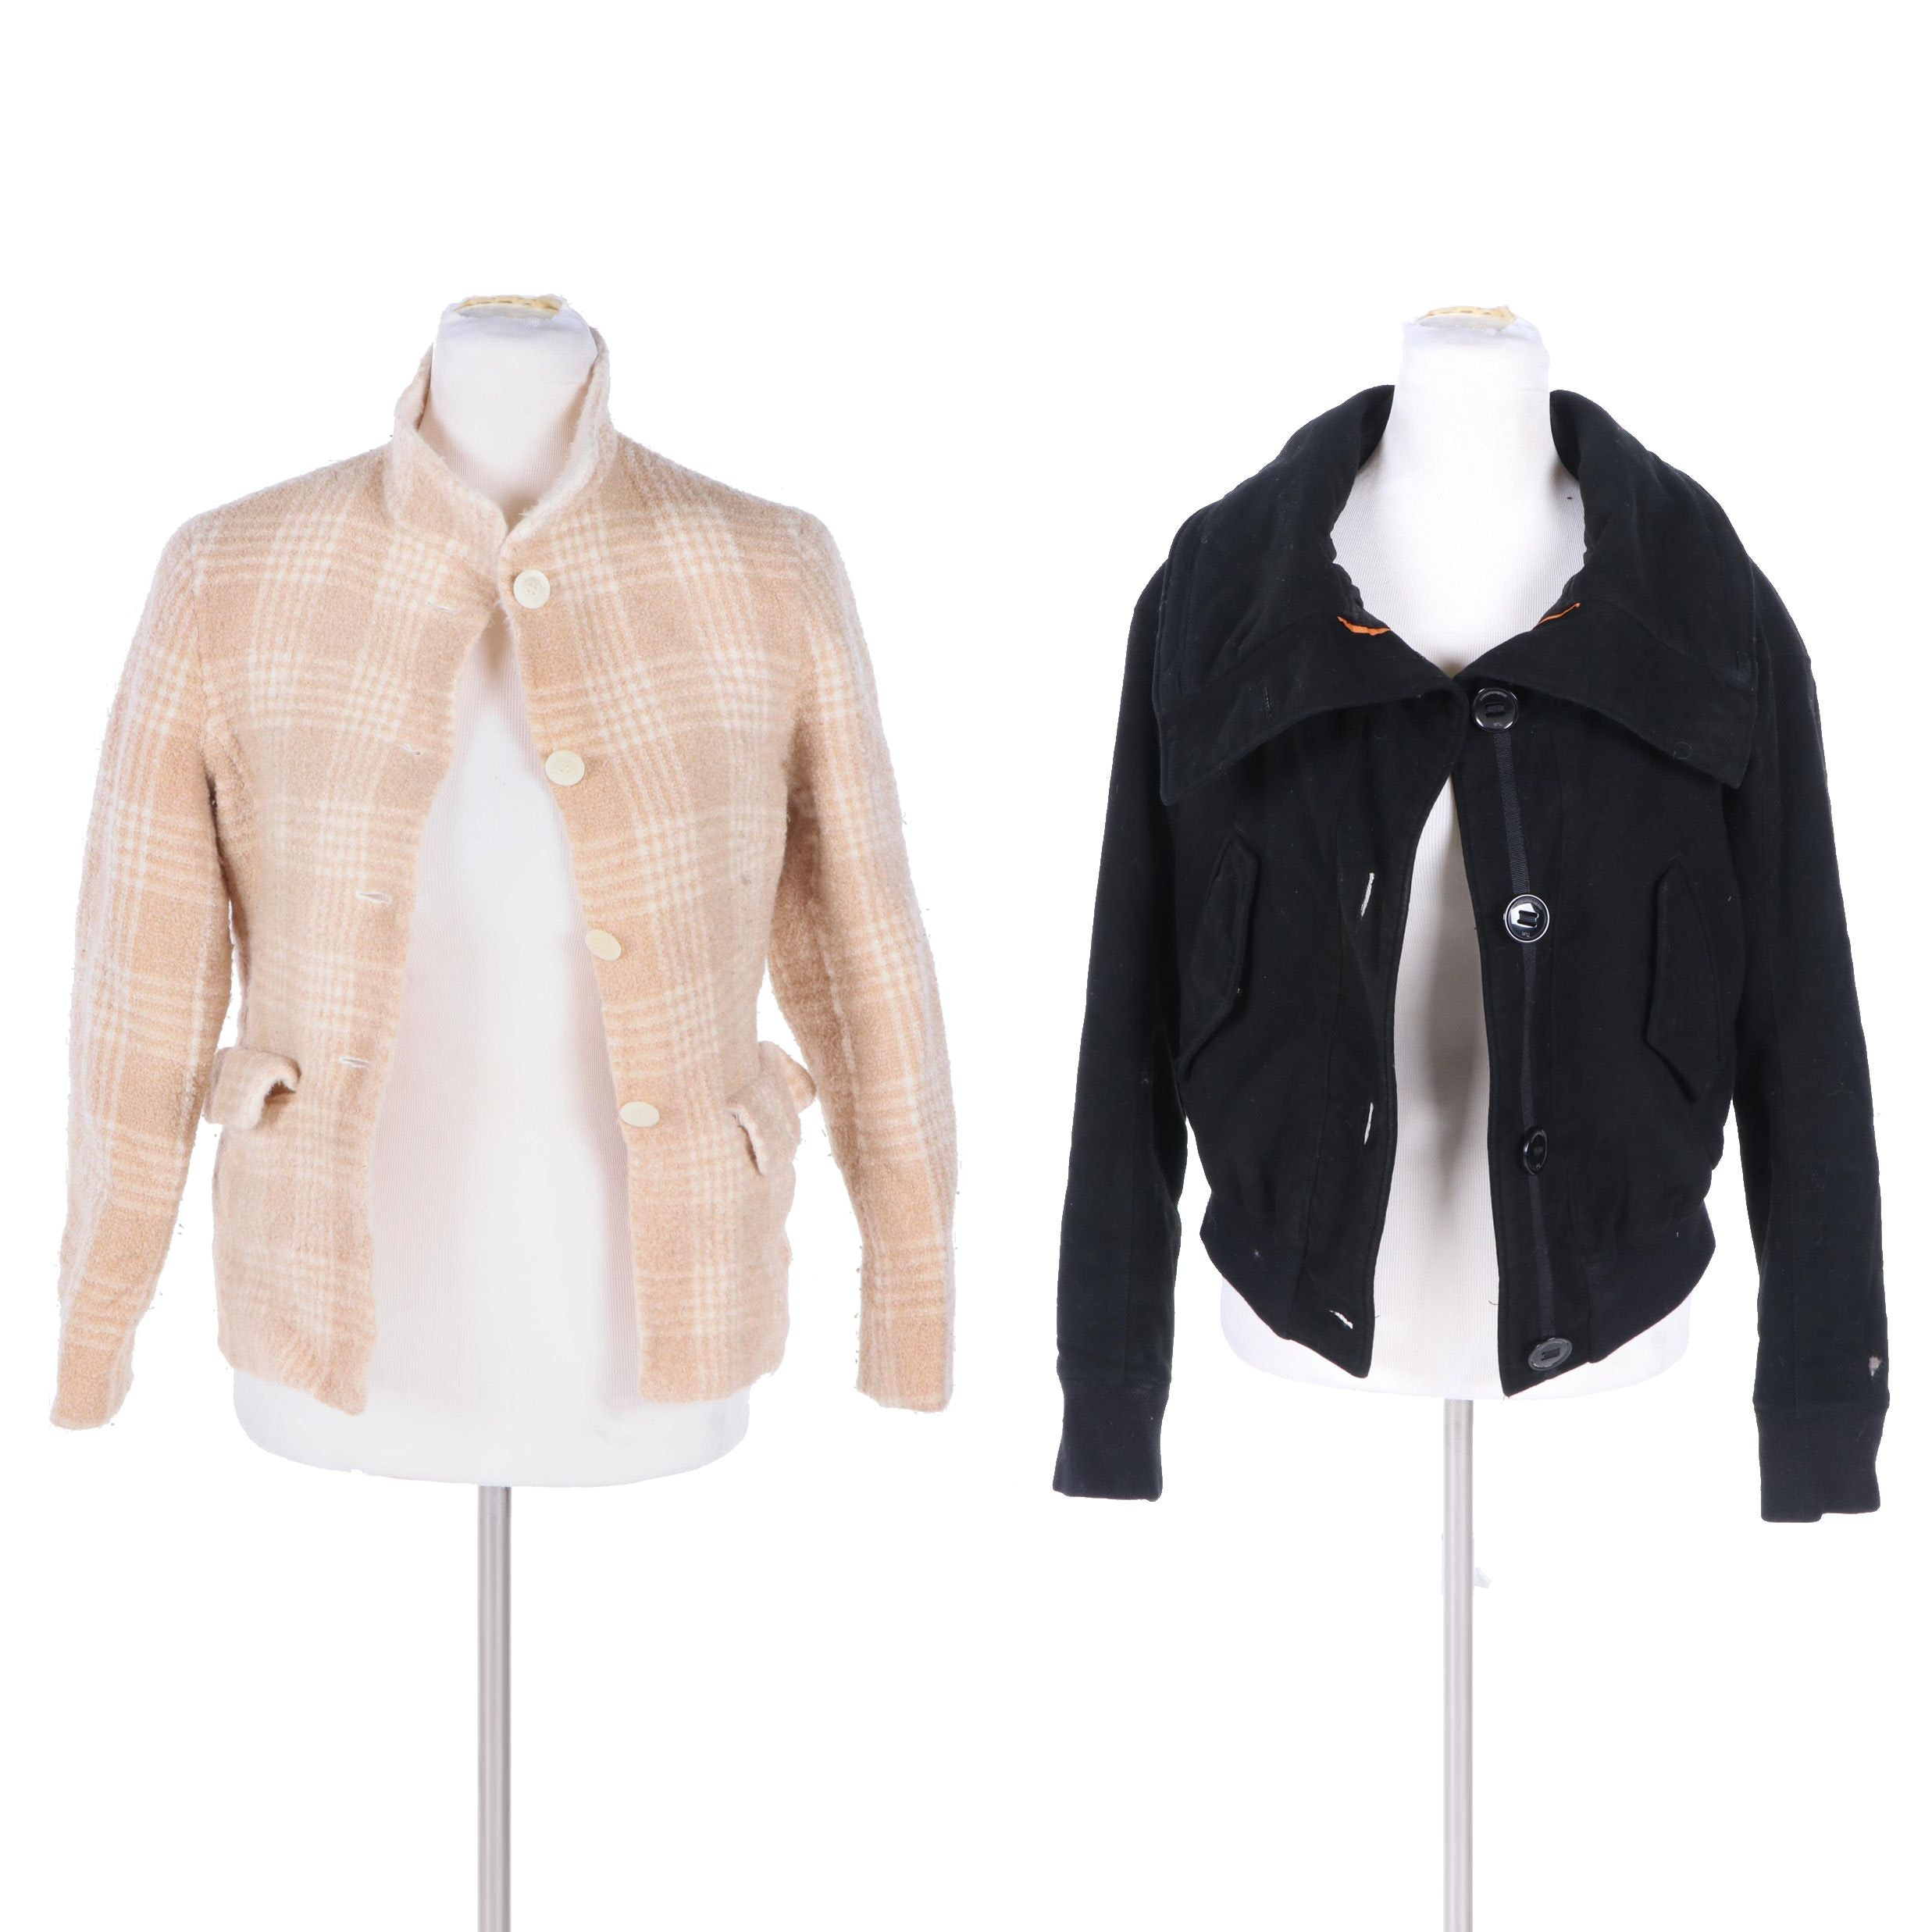 Women's Alexander McQueen and Escada Jackets